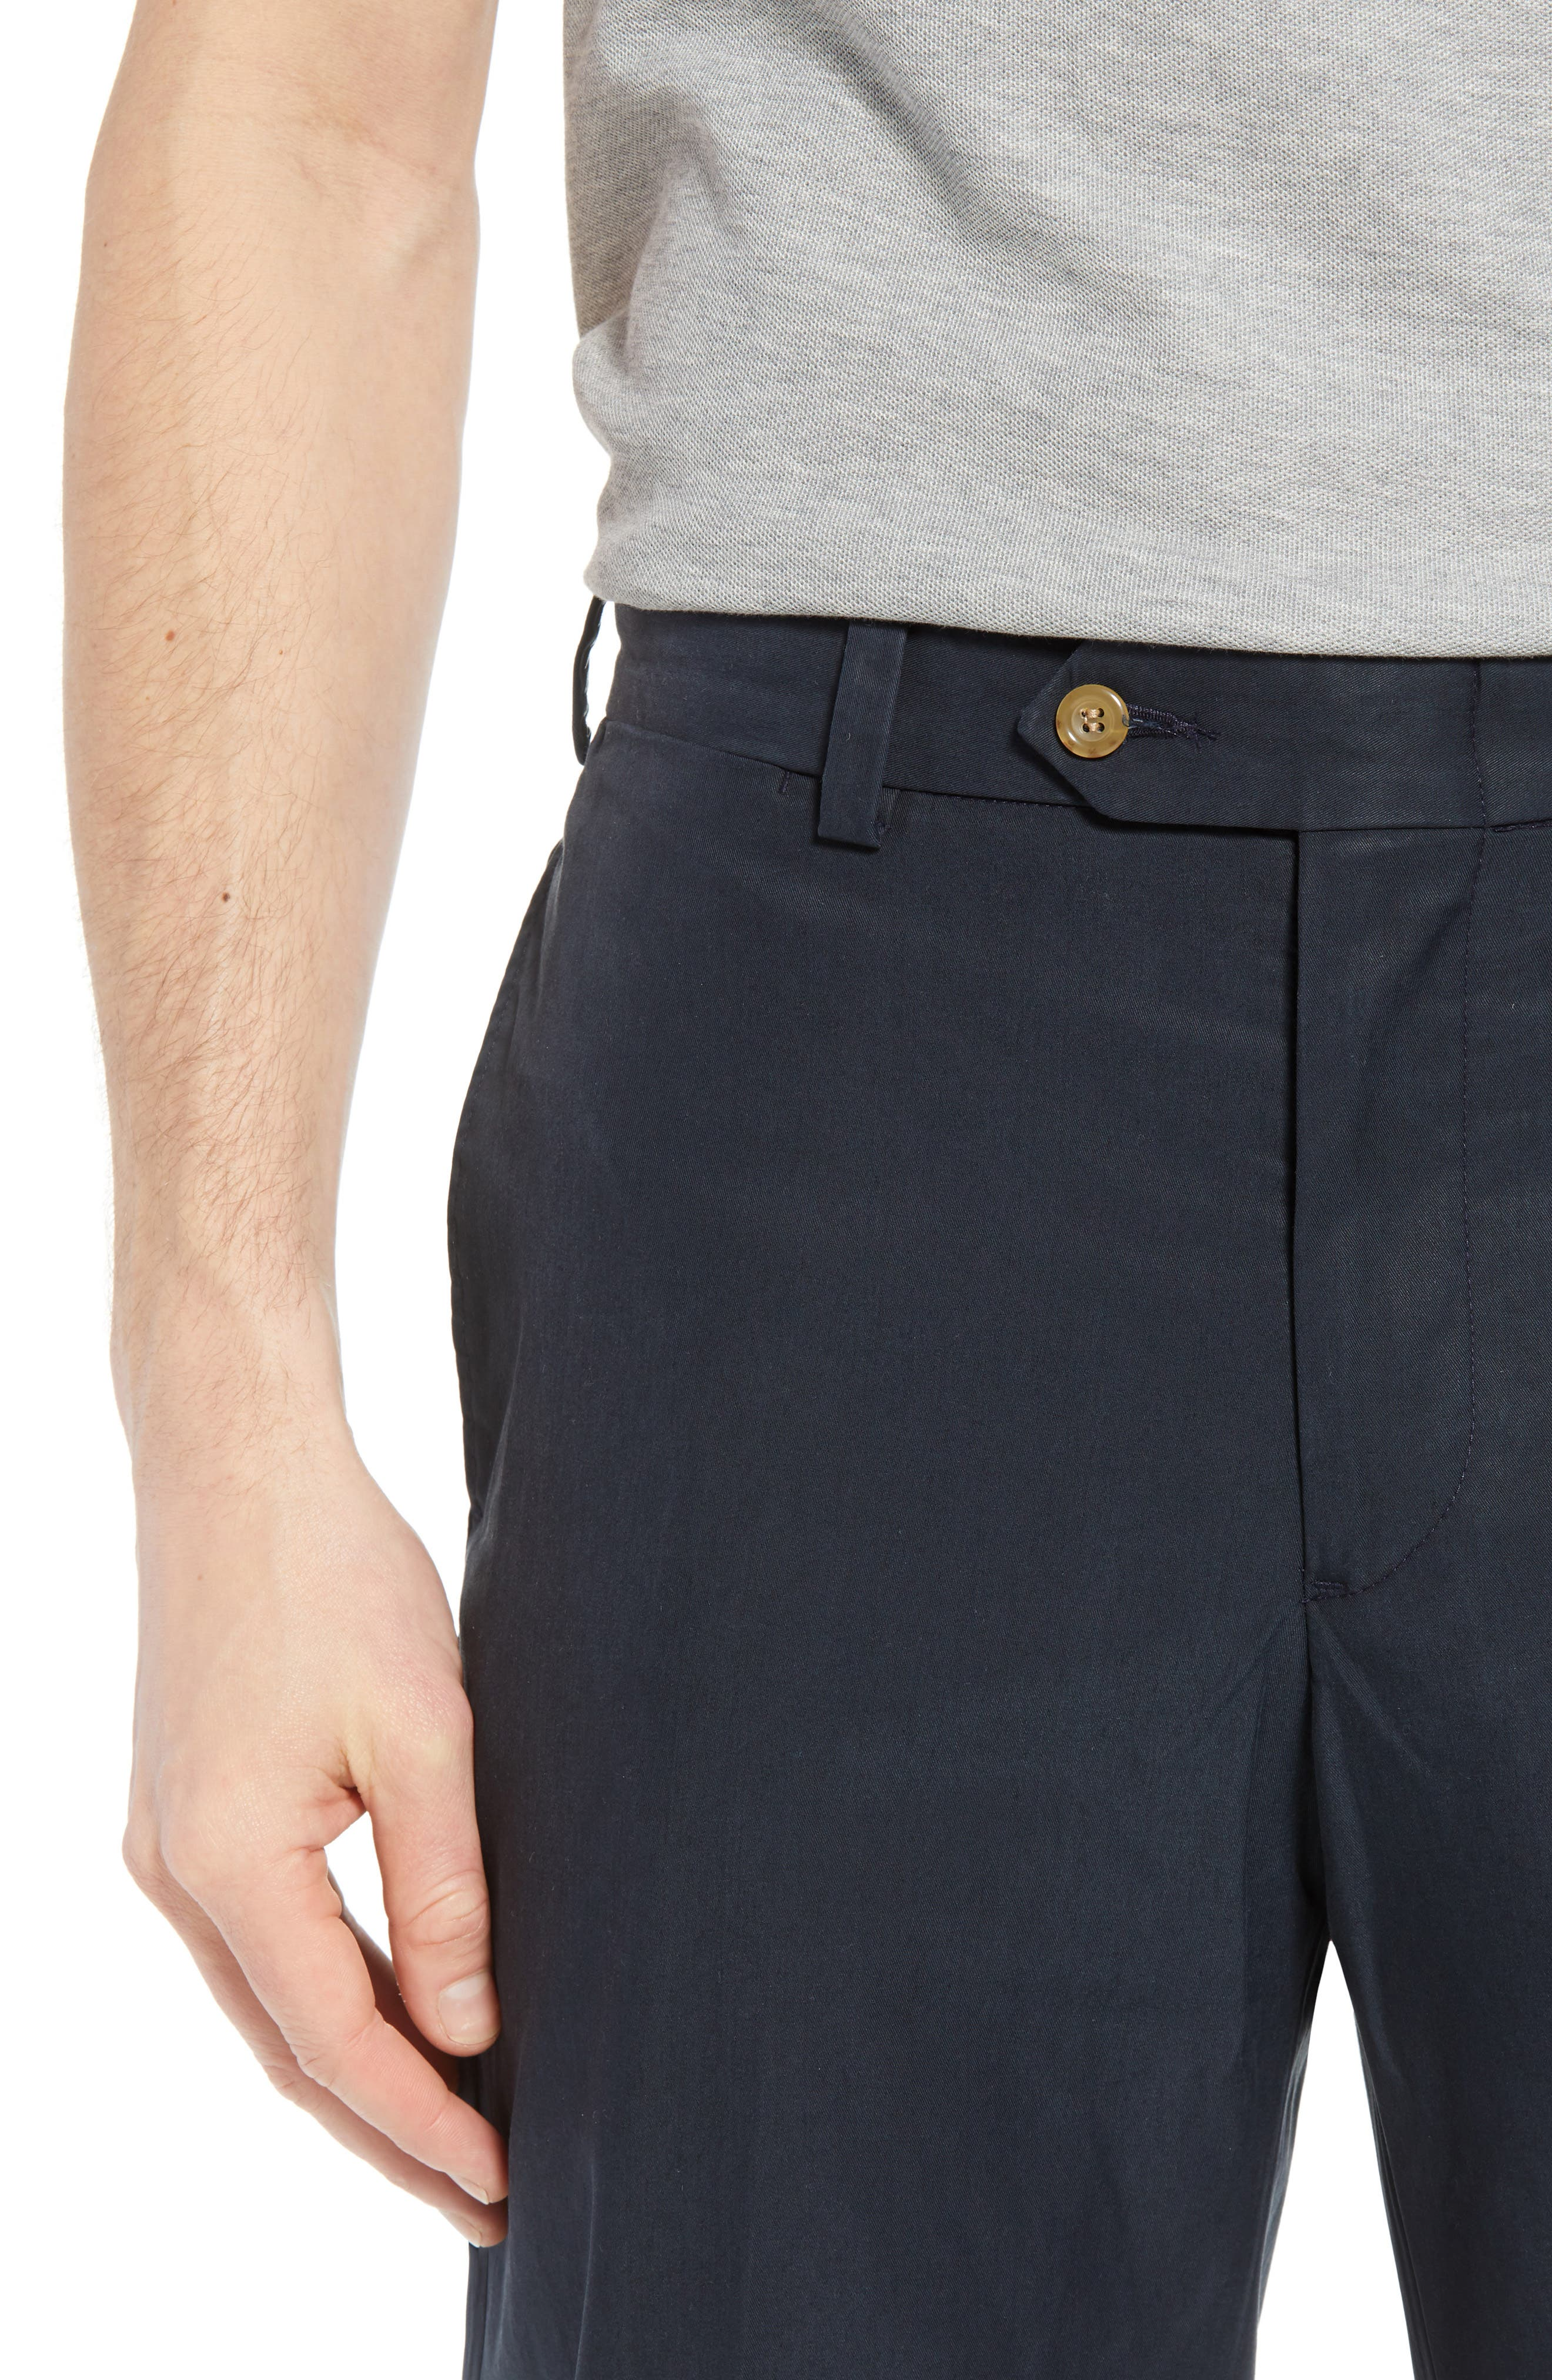 M2 Classic Fit Flat Front Travel Twill Pants,                             Alternate thumbnail 4, color,                             Navy